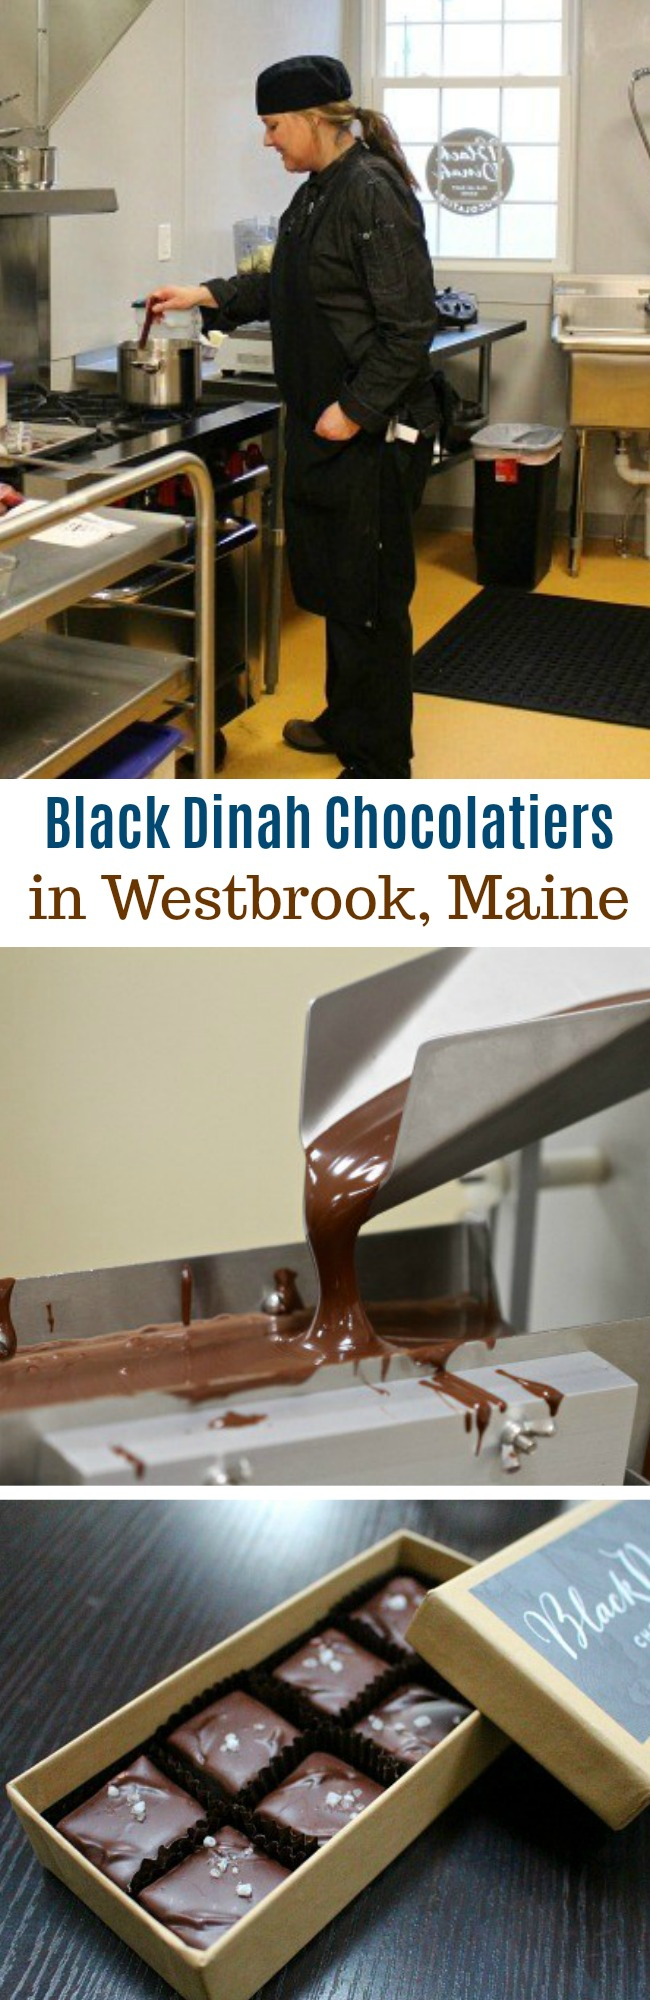 Our Visit to Black Dinah Chocolatiers in Westbrook, Maine